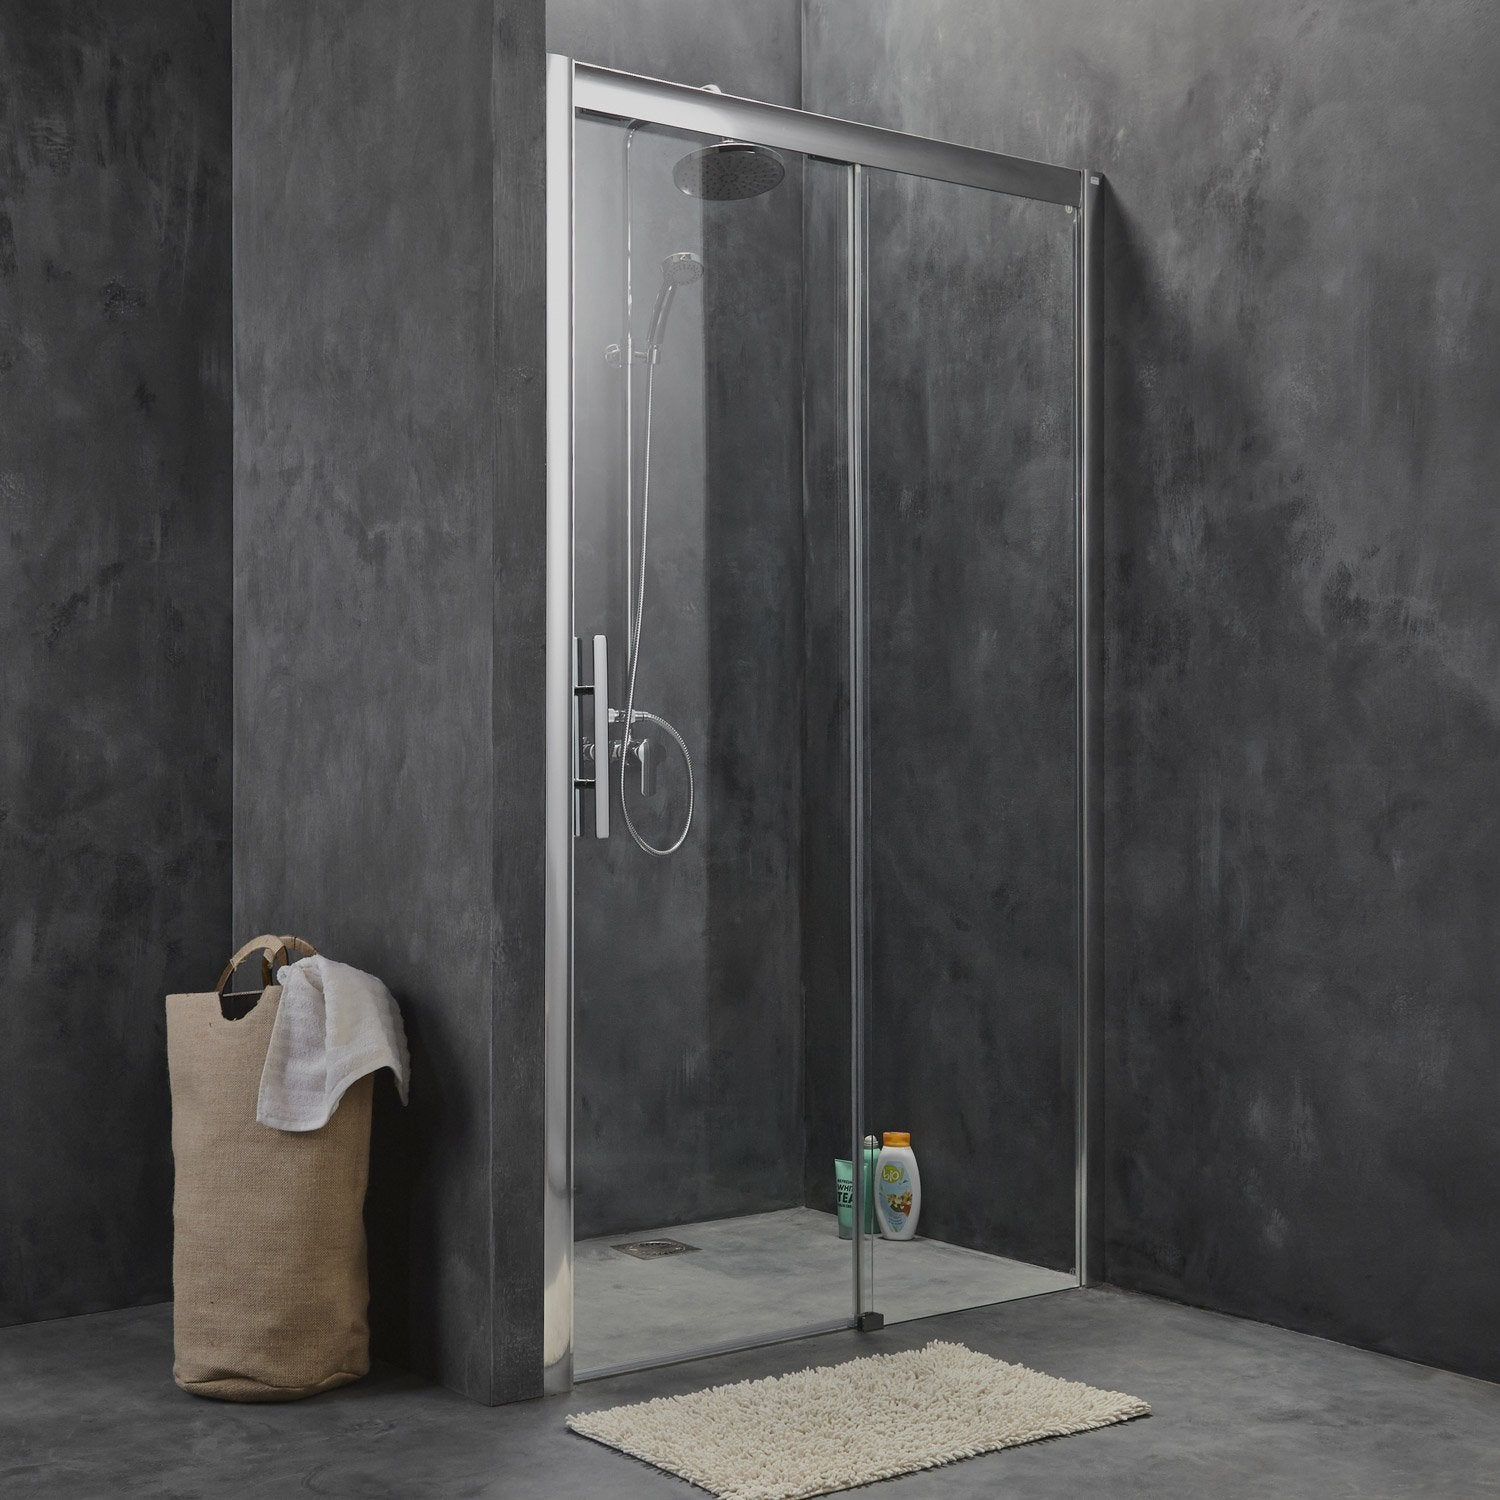 Pose d 39 une porte de douche par leroy merlin leroy merlin for Portes de douches